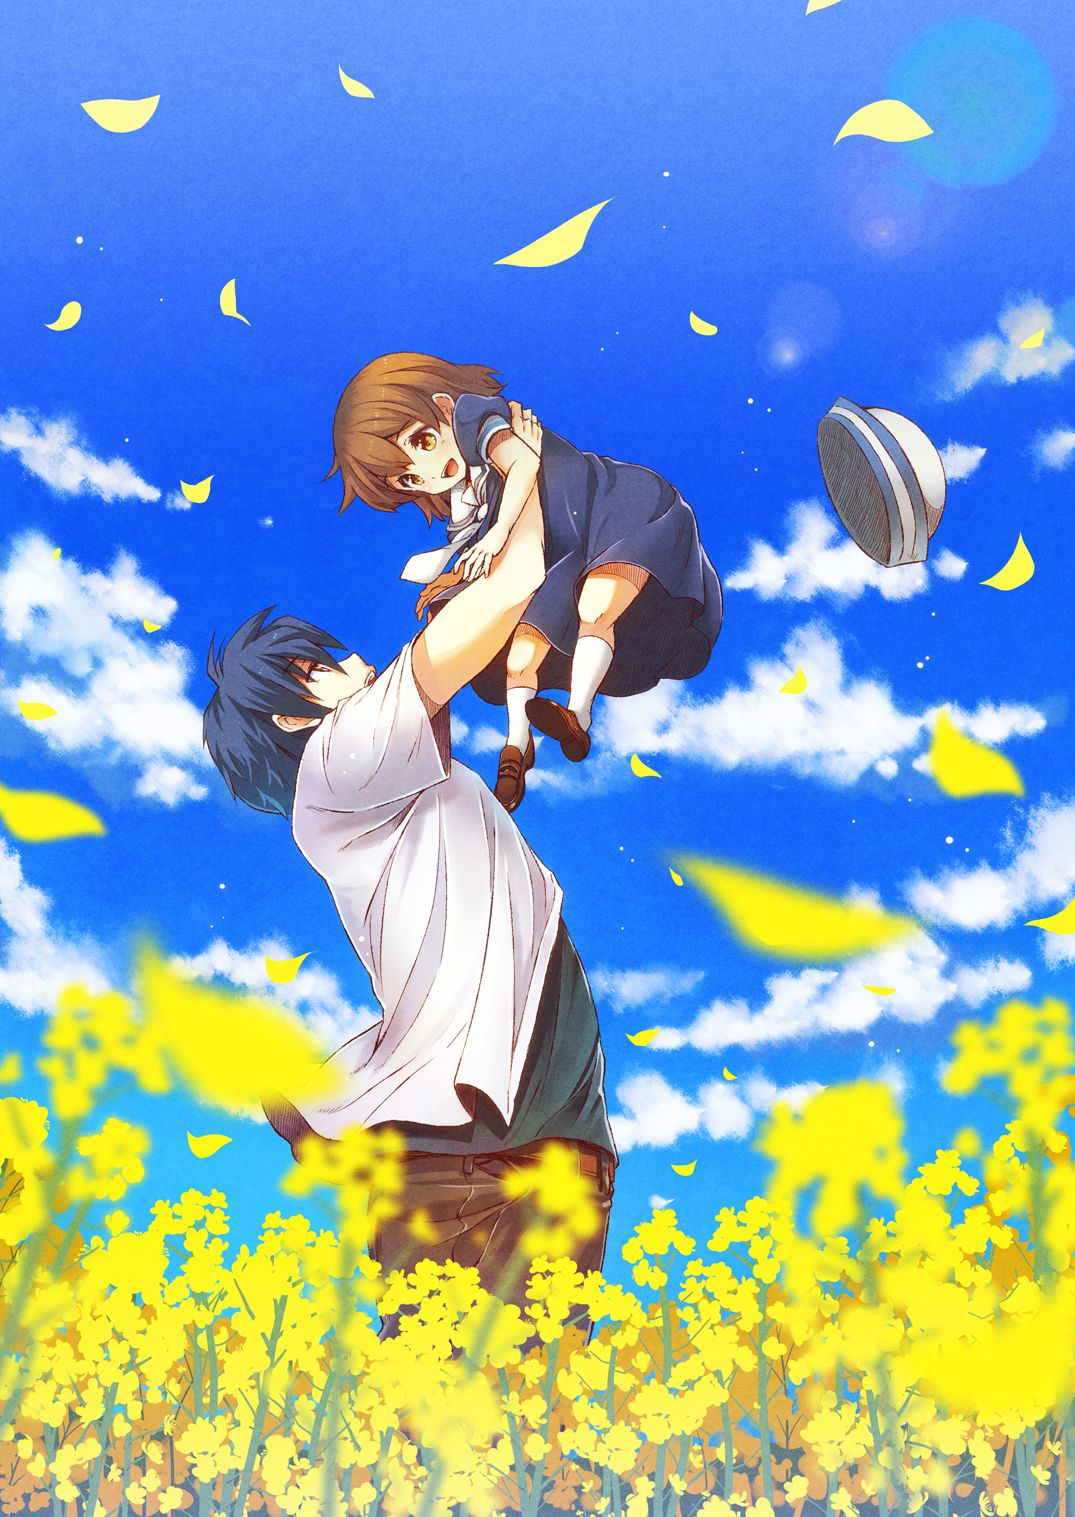 Tomoya And Ushio Okazaki Clannad Anime With Images Clannad